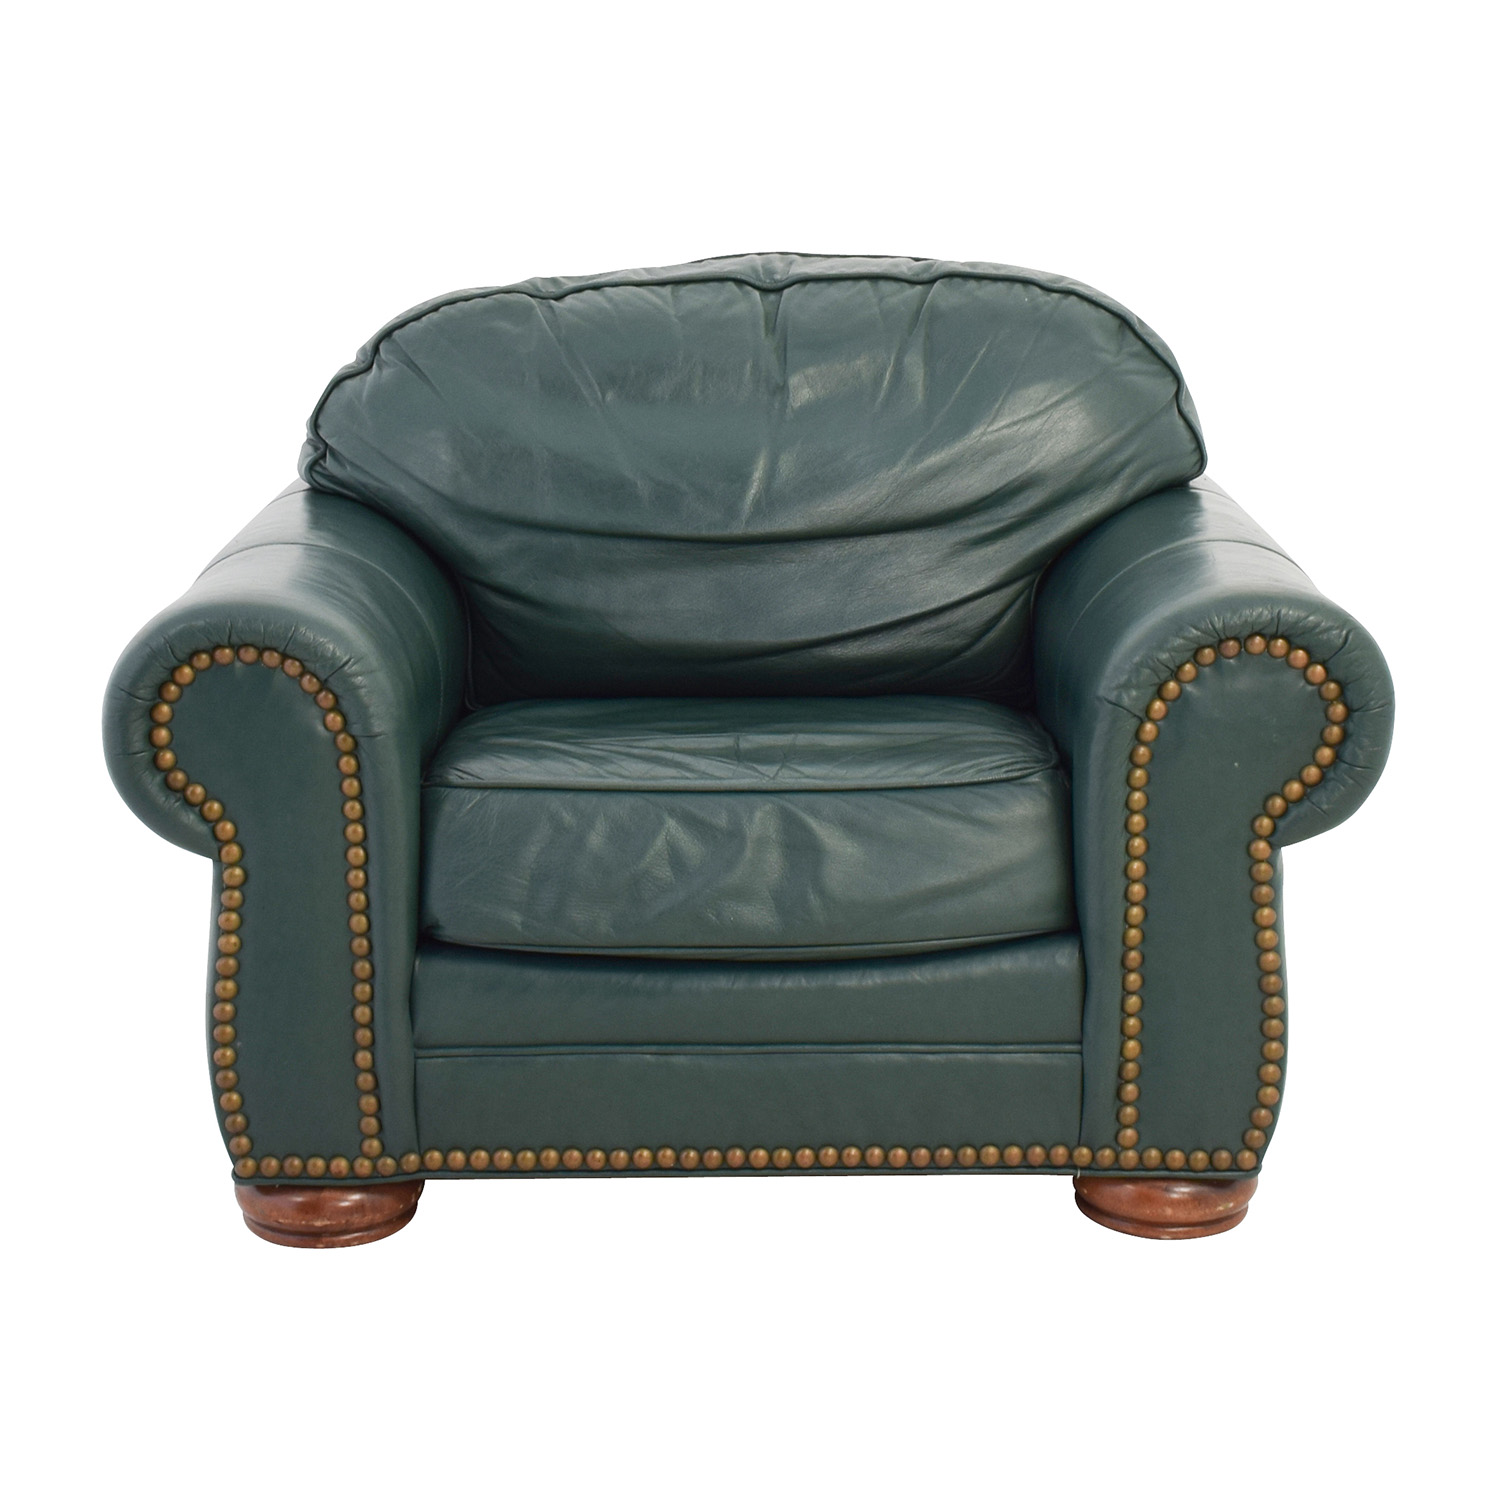 oversized leather chair nursery rocking chairs 65 off clayton marcus green